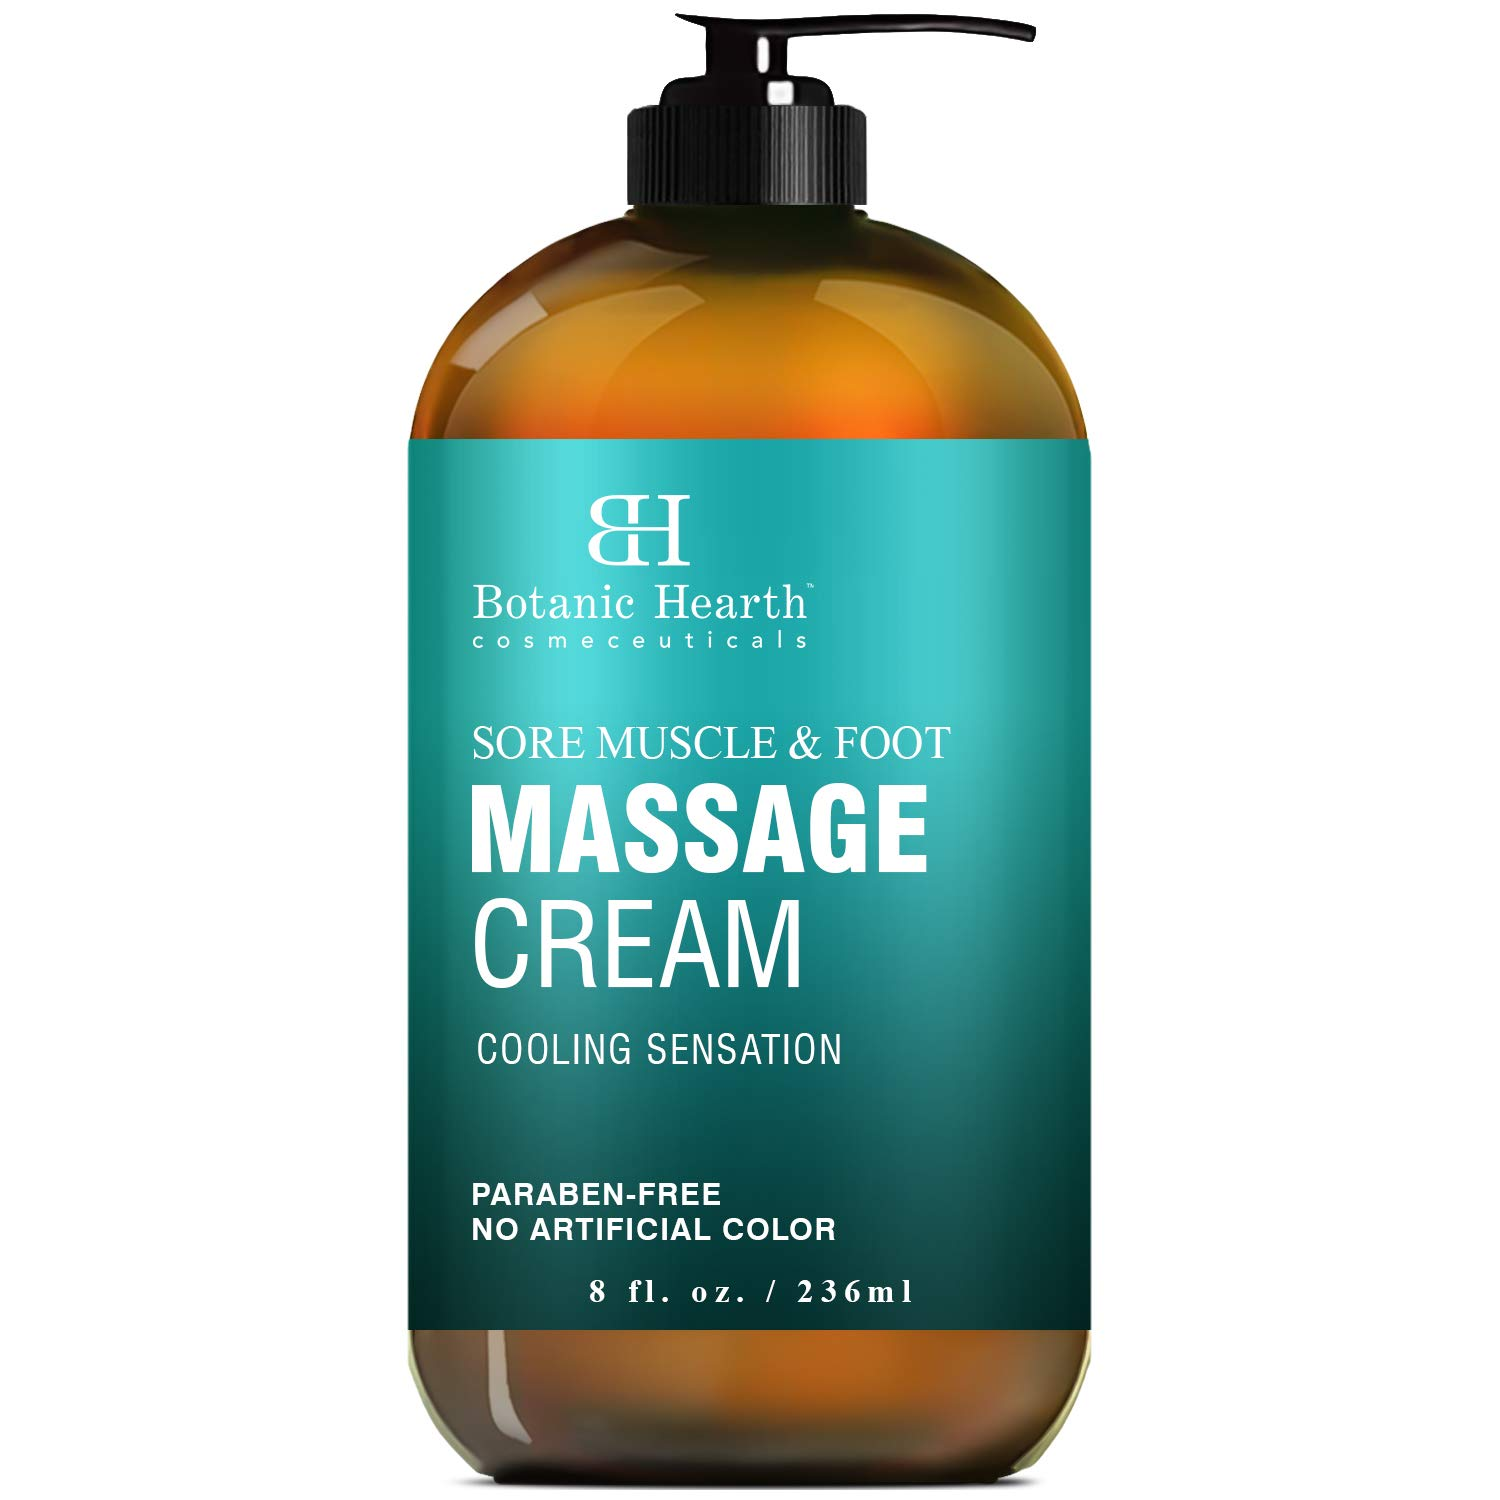 BOTANIC HEARTH Foot and Sore Muscle Massage Cream with Menthol - Soothes Tired Feet, Sore Muscles and Joint Pain, 8 fl oz by Botanic Hearth